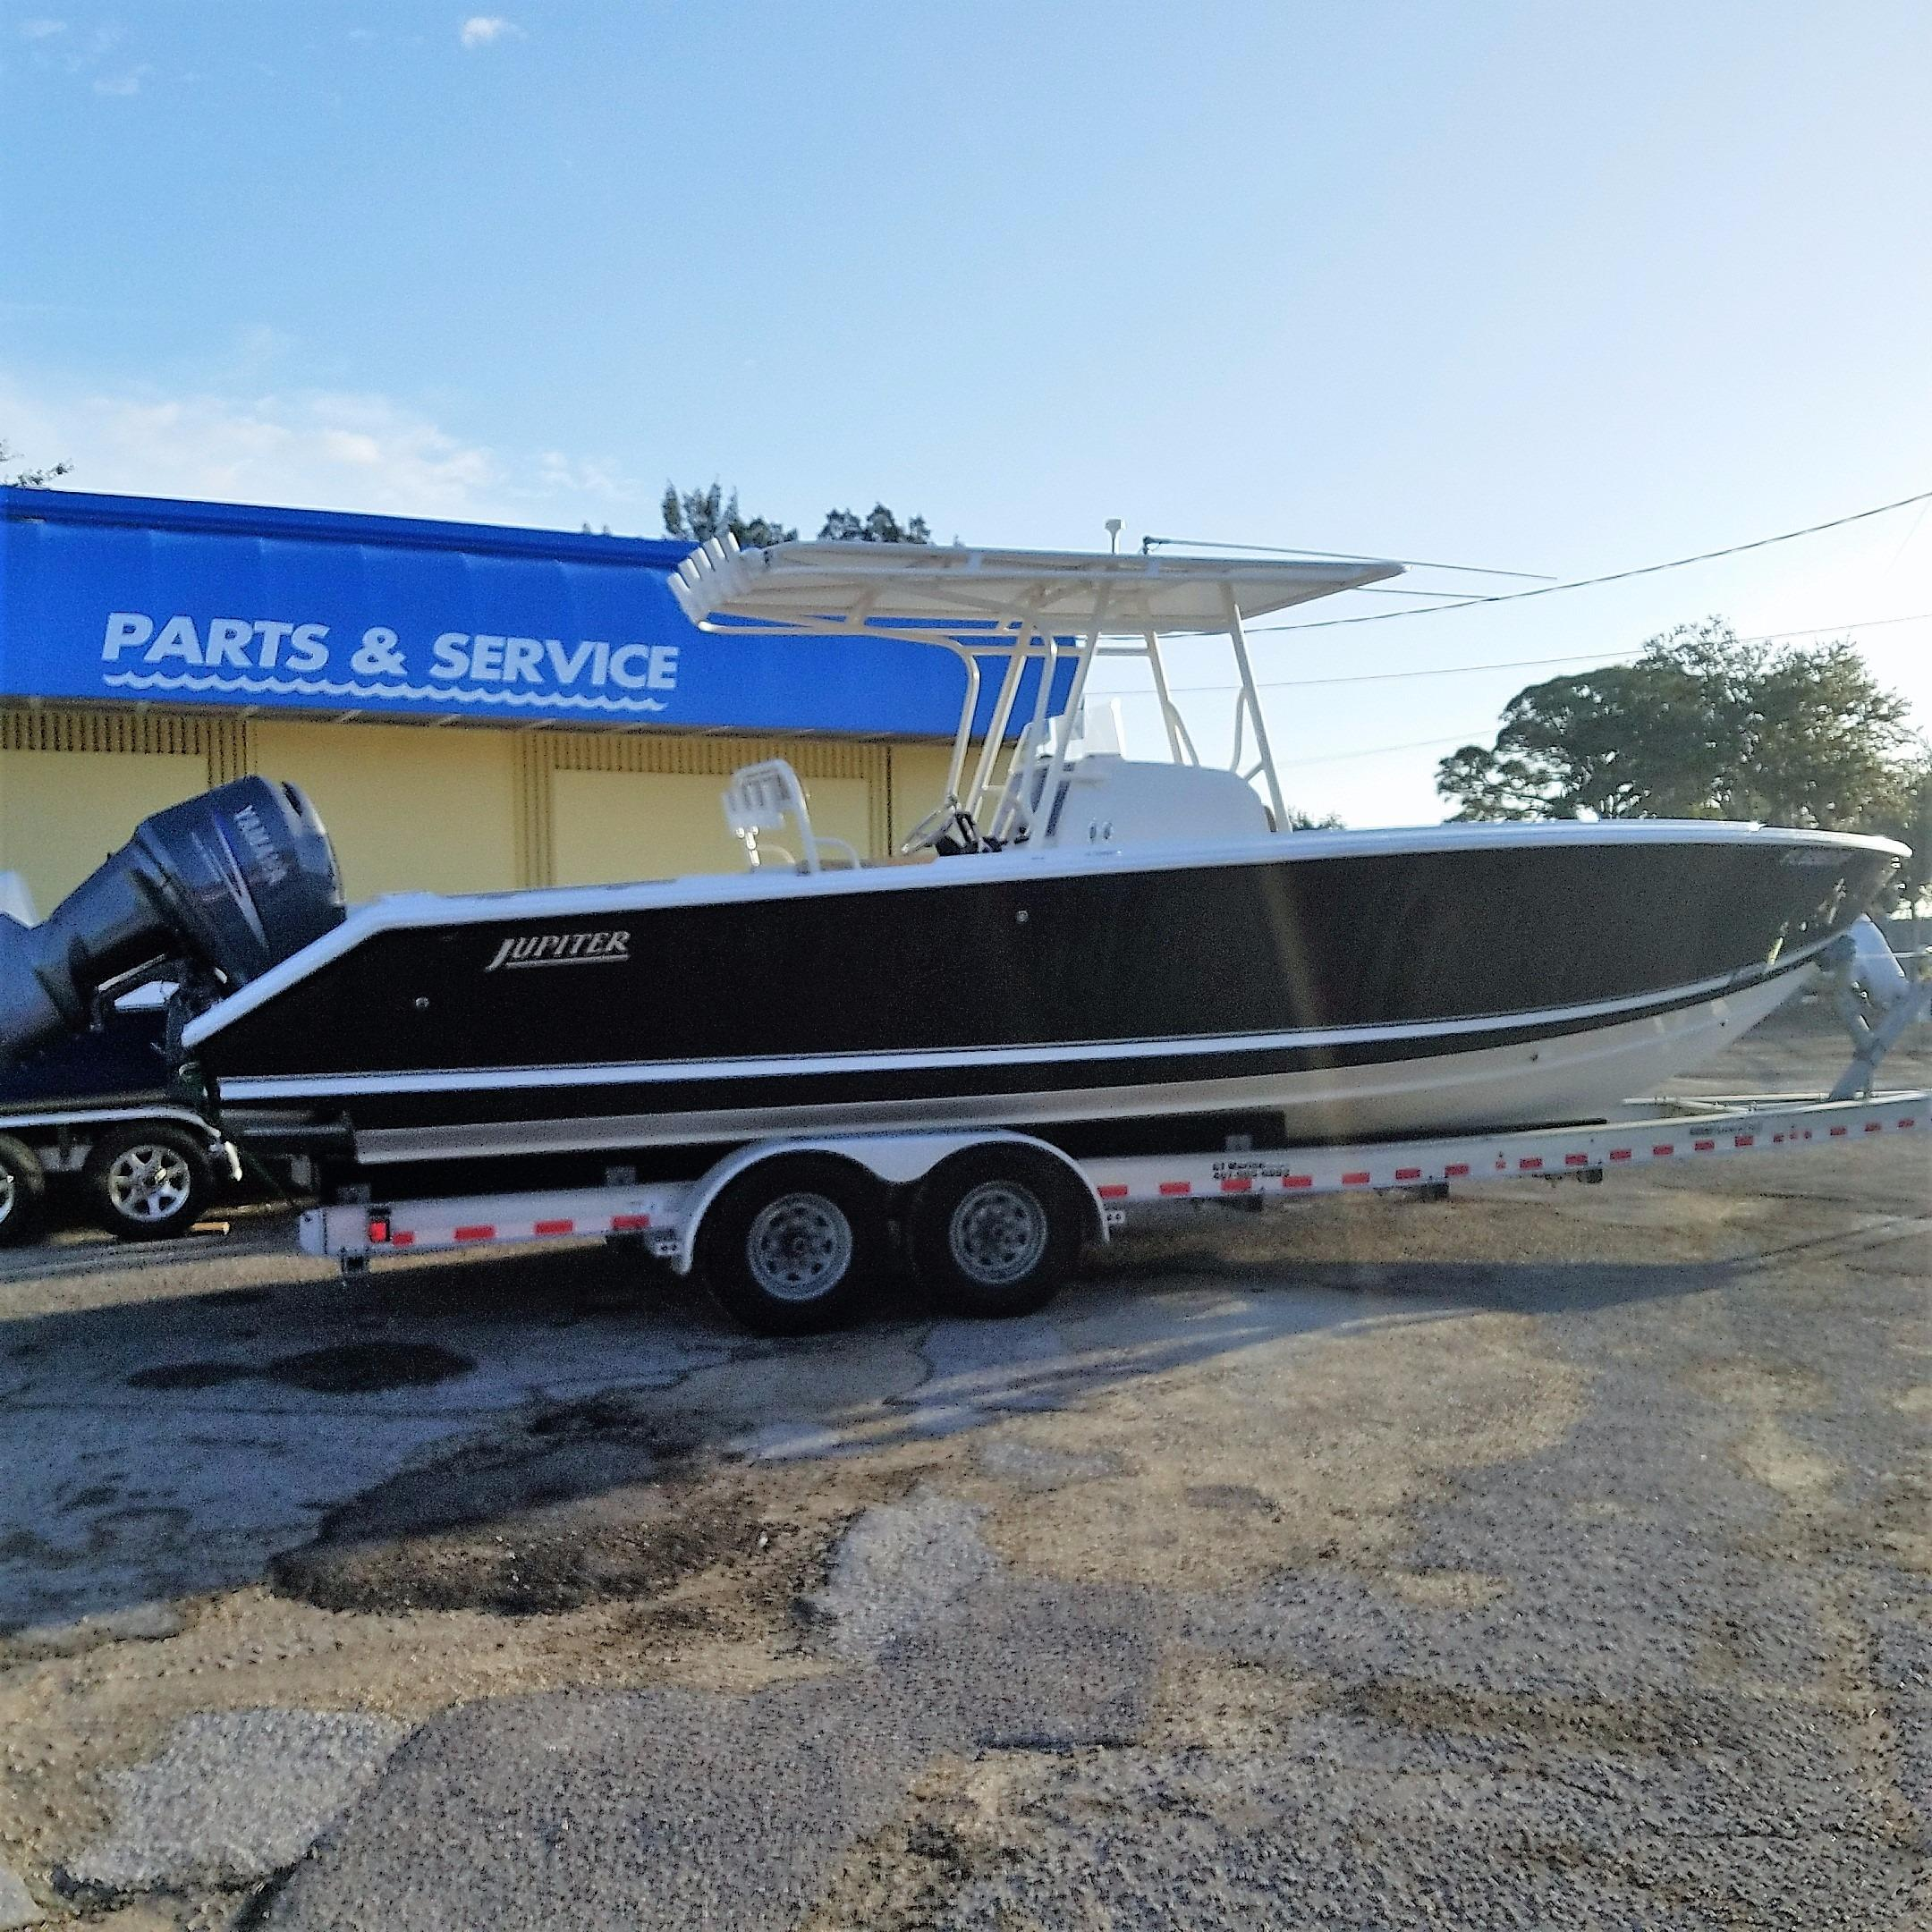 Boats for sale in 3, United States